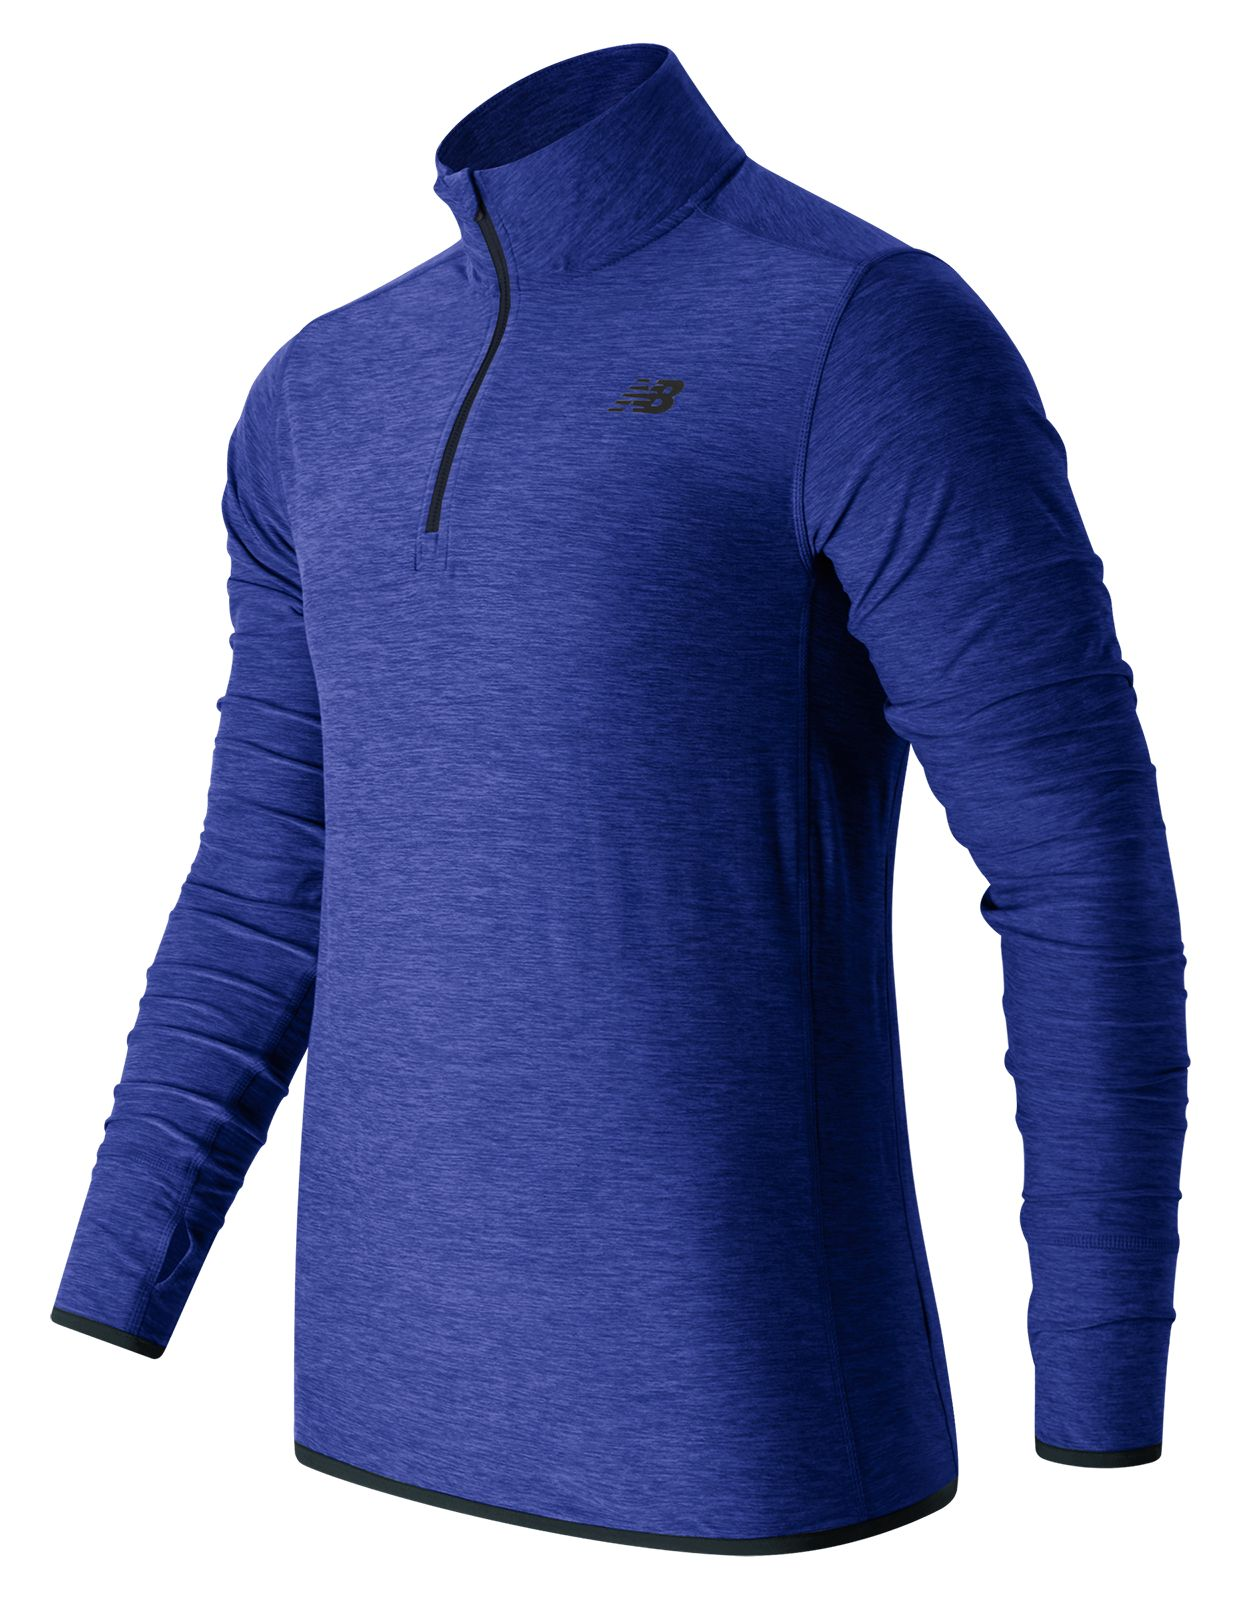 New Balance : N Transit Quarter Zip : Men's Performance : MT53030MBH